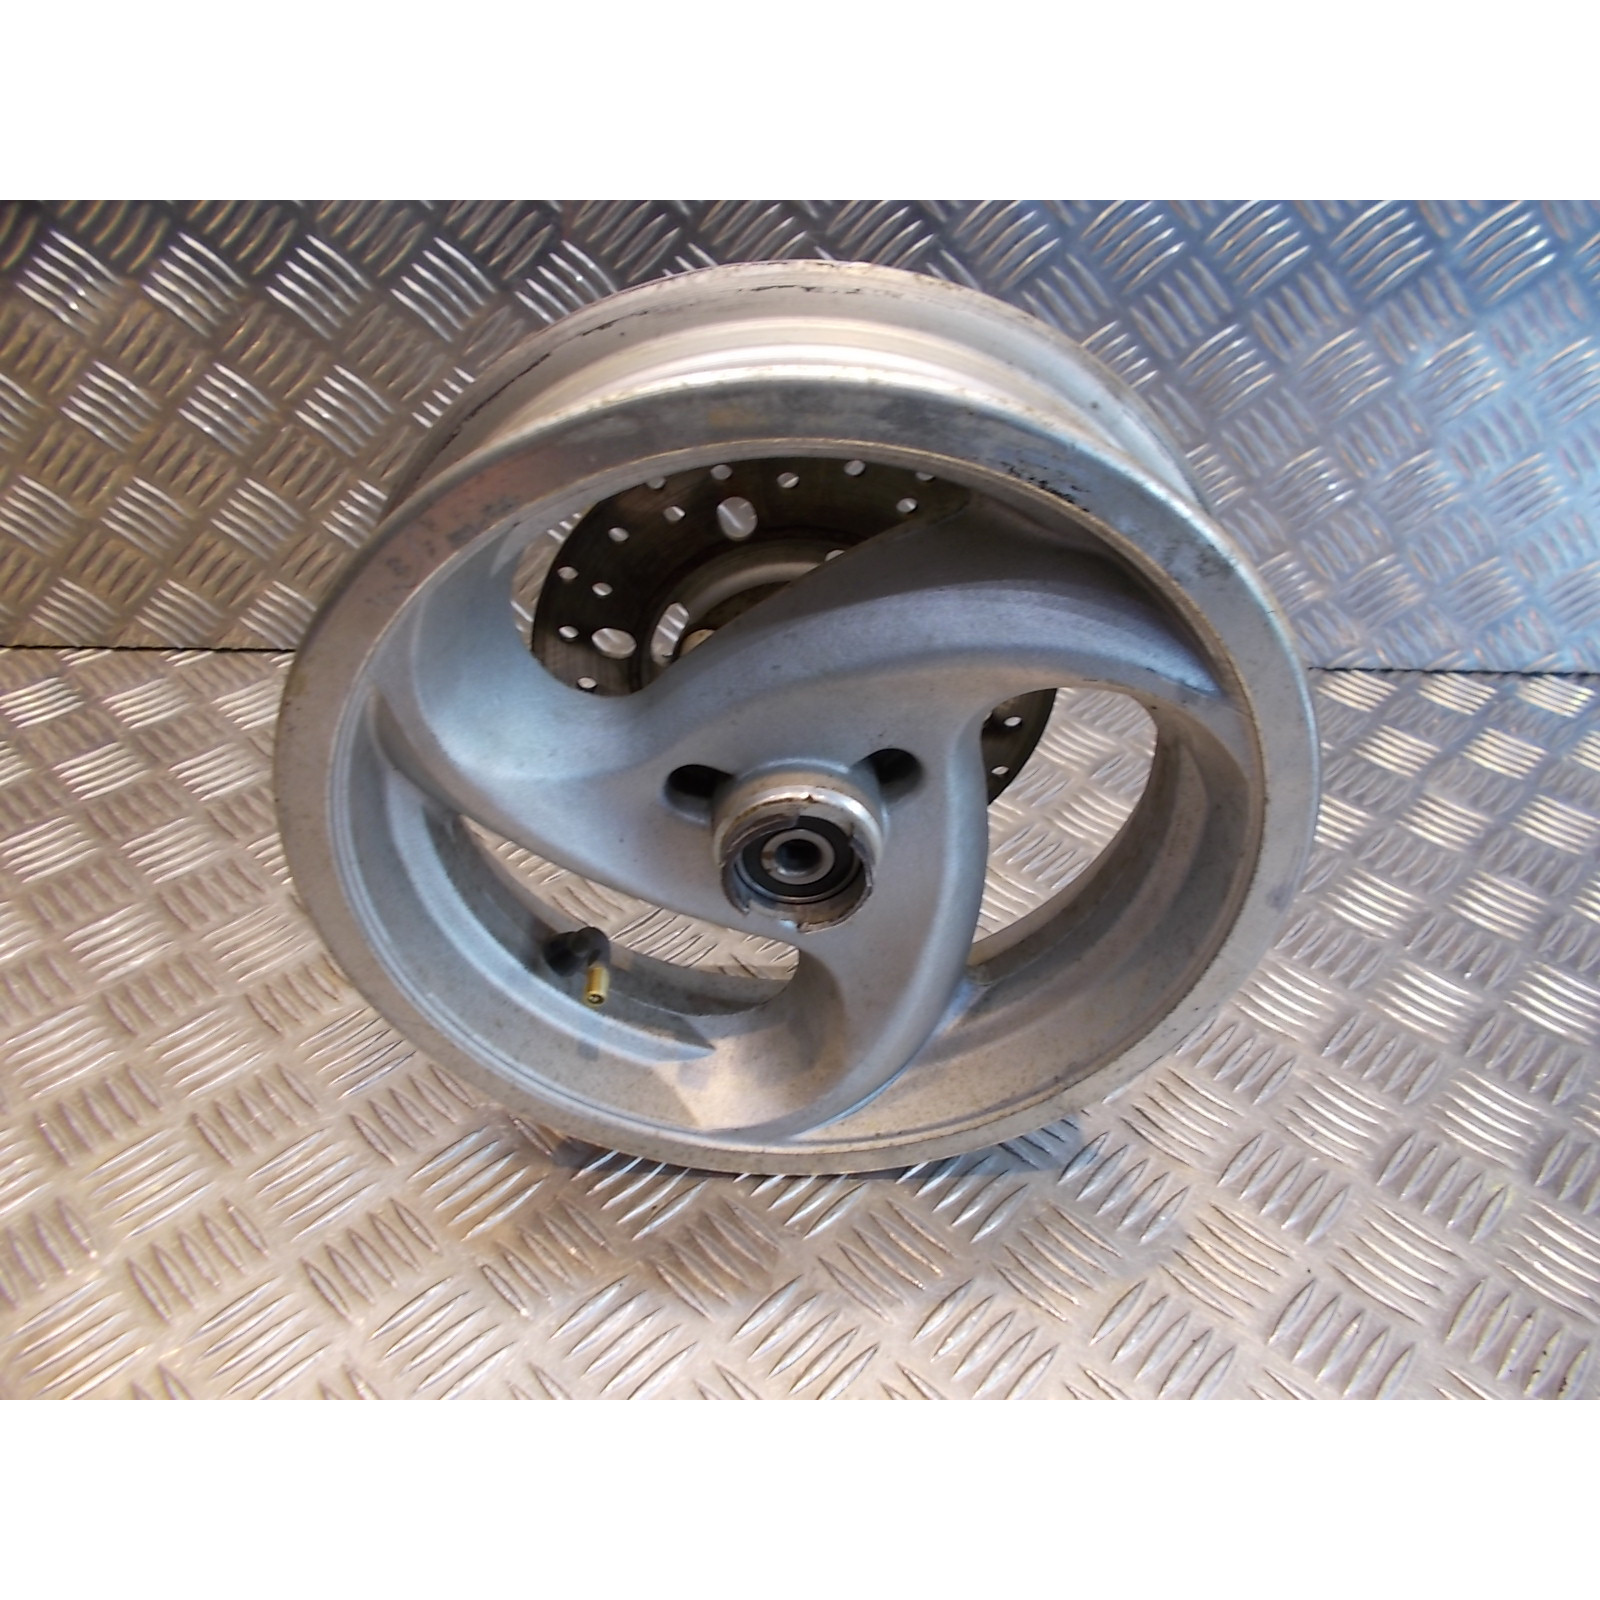 jante roue disque frein avant 10 x 2.50 scooter 50 chinois 2 et 4 temps gy6 3 branches.